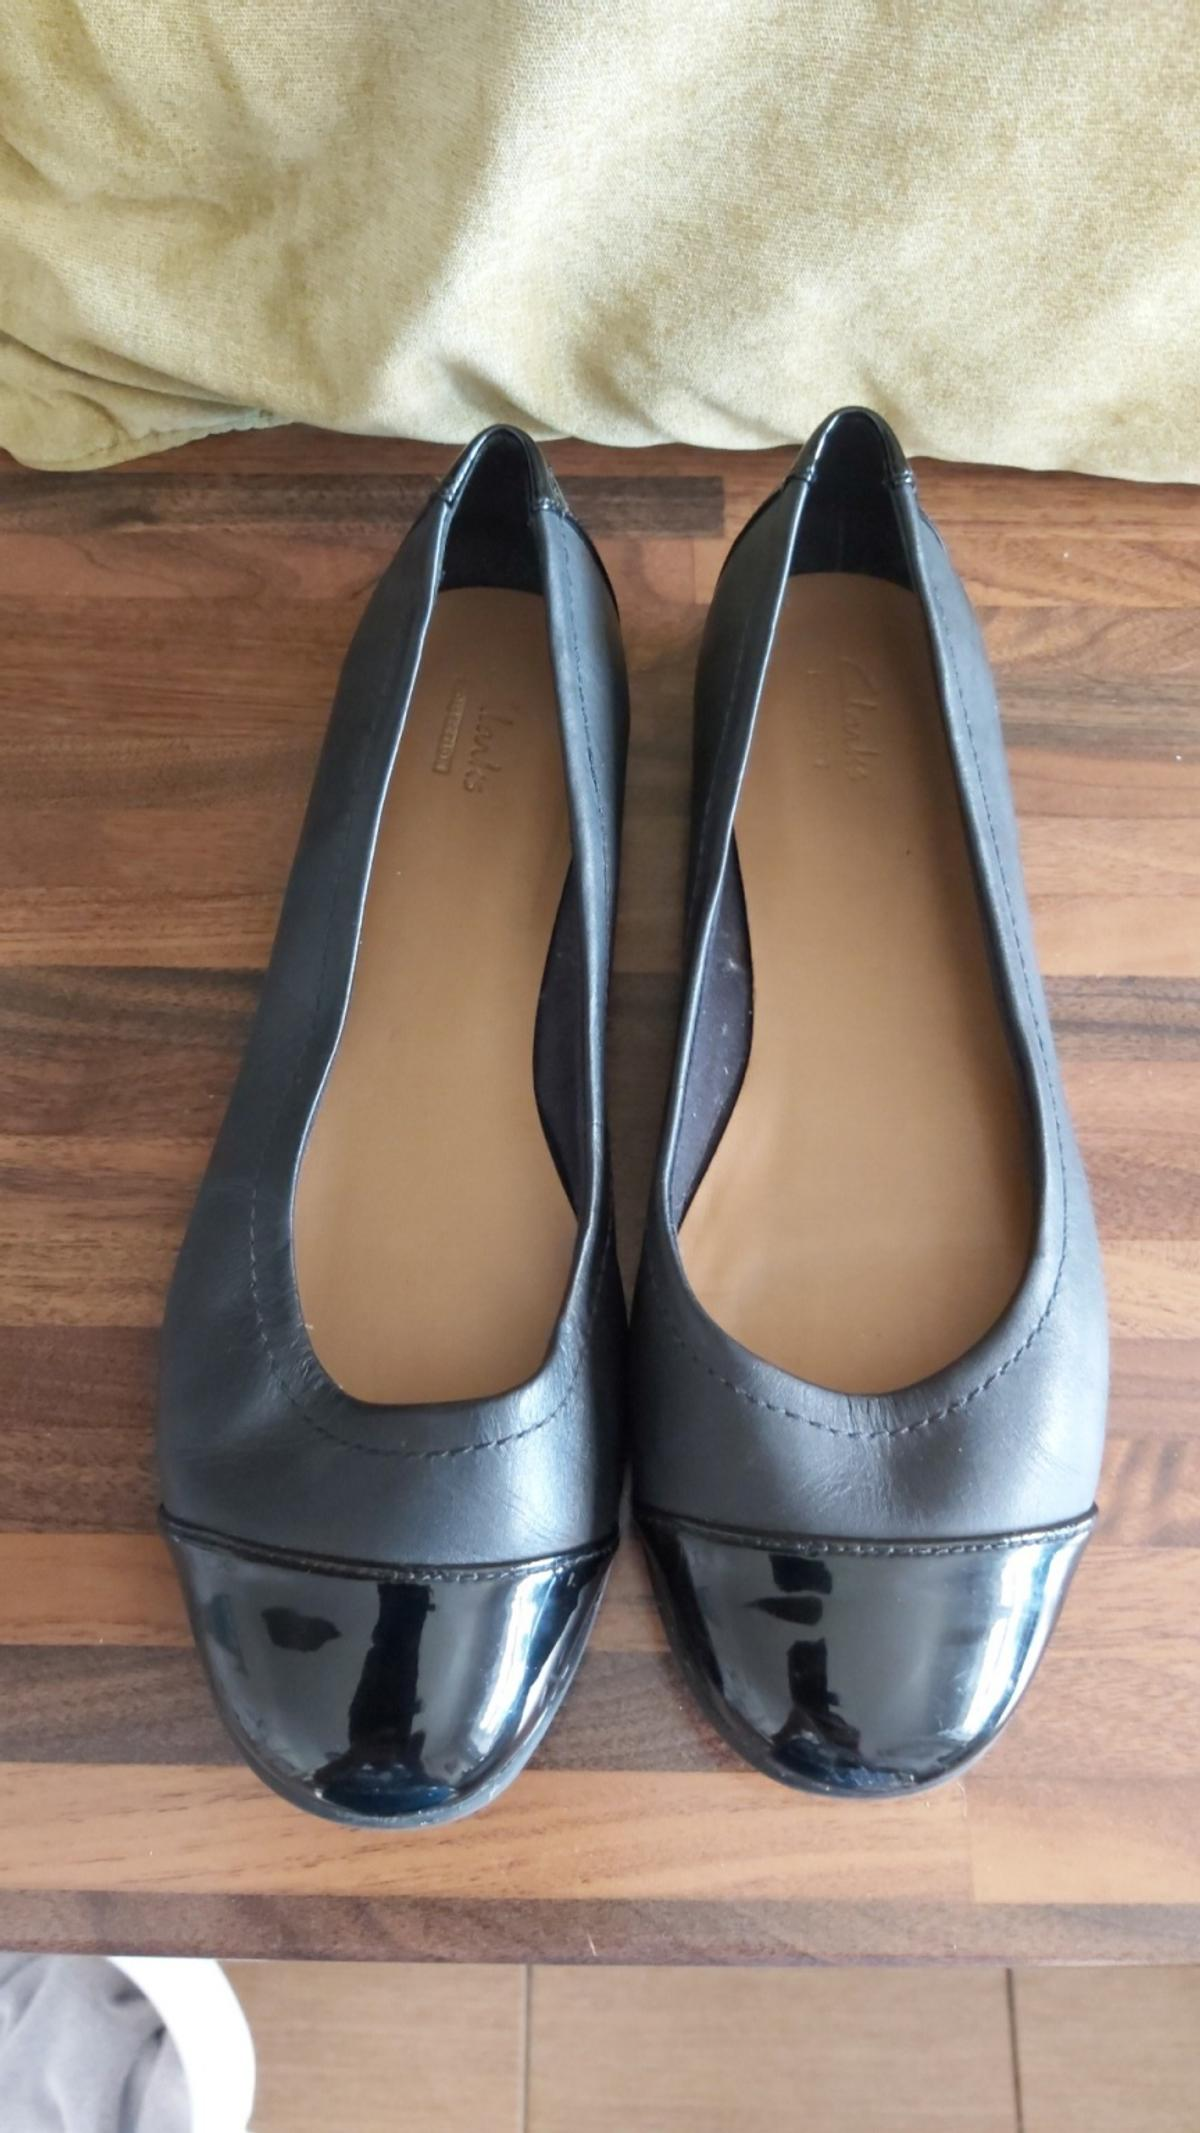 Clark's slip on shoes Black size 7 worn once £10.00 No Lower. pick up only.NO LESS. Very good condition.